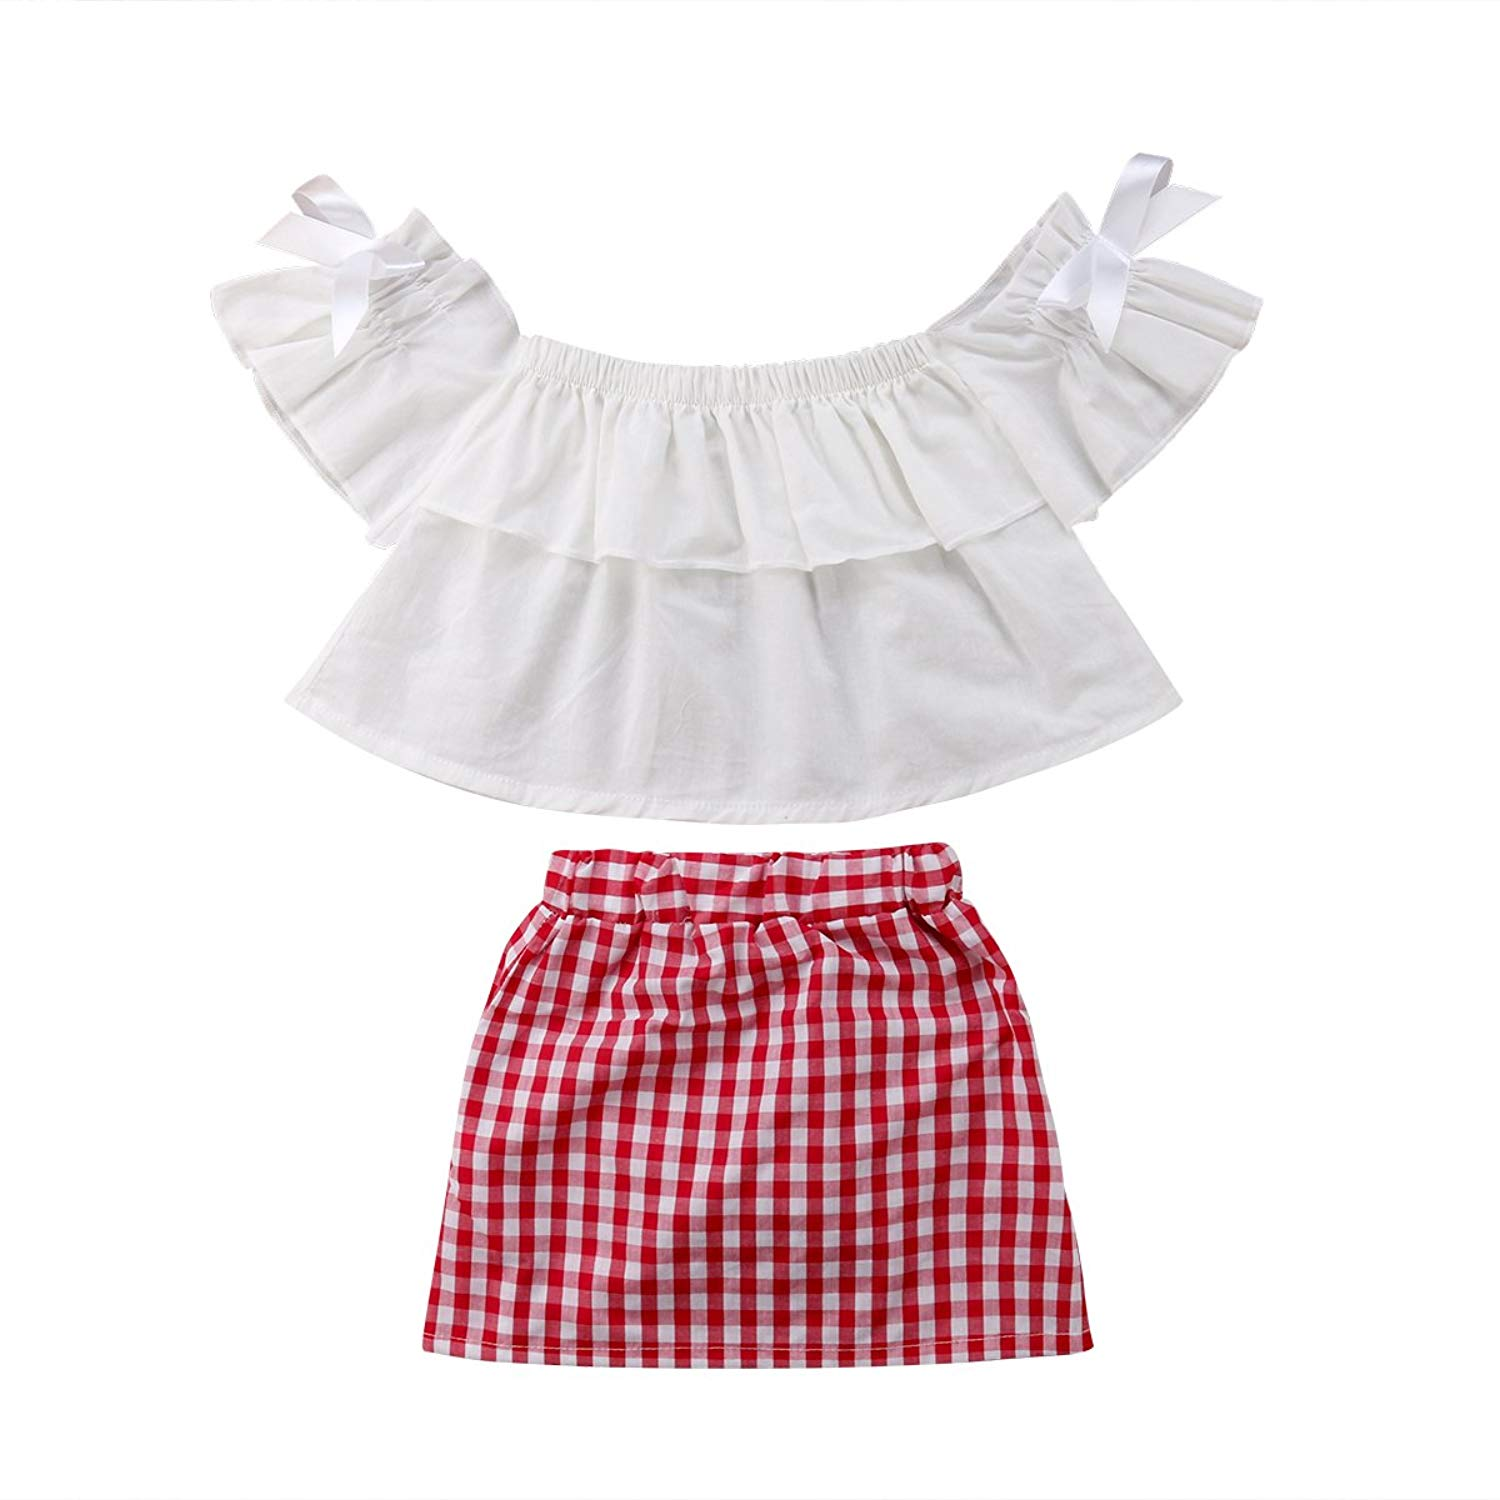 7d781f6fbbf0 Baby Girls Off-Shoulder Ruffles Tops Plaid Check Skirt Dress Kids Girl  Bowknot Dress Clothes